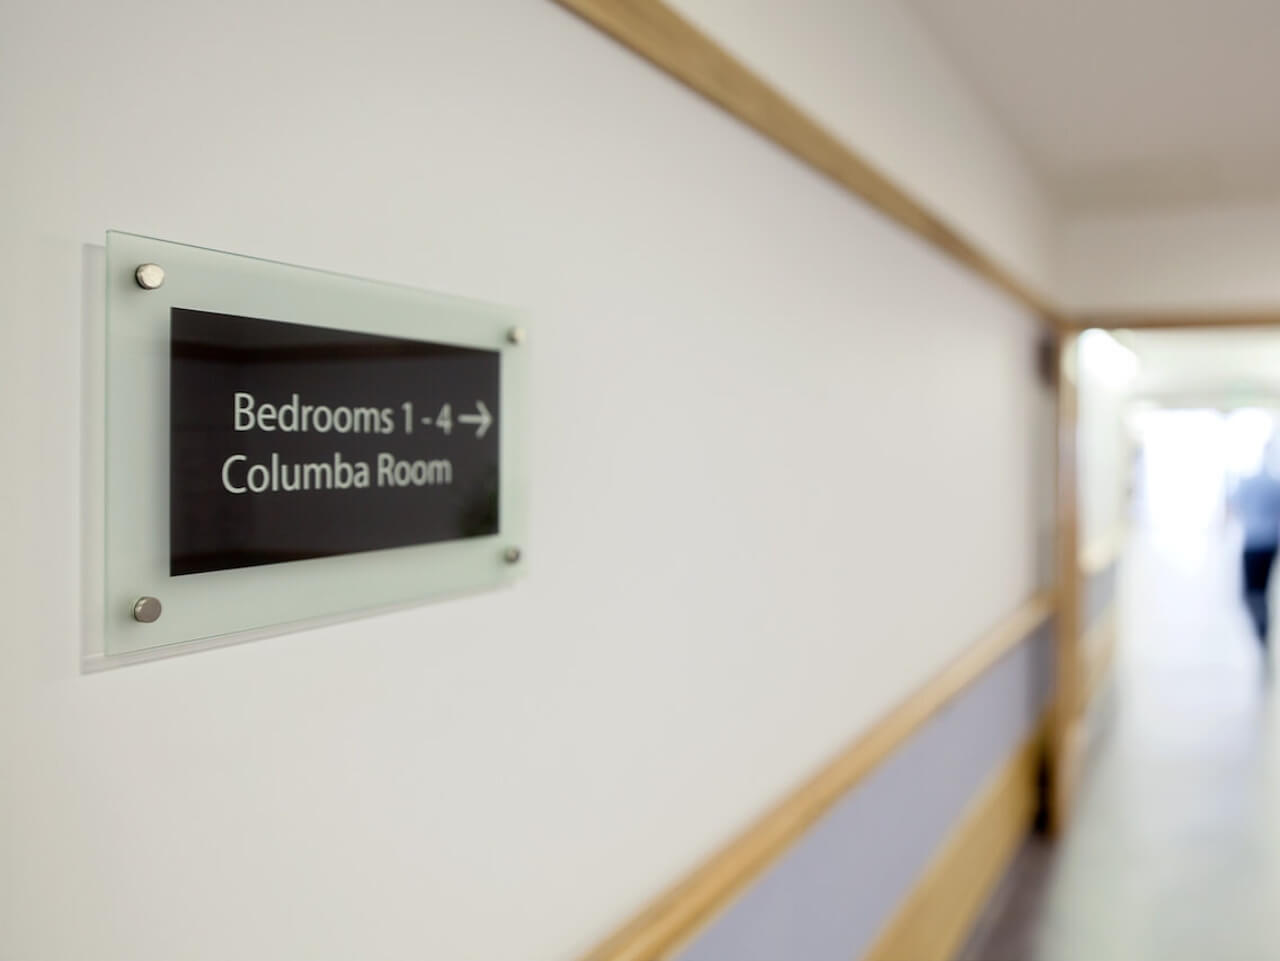 Wall mounted glass signage for bedrooms at St Columba's Hospice